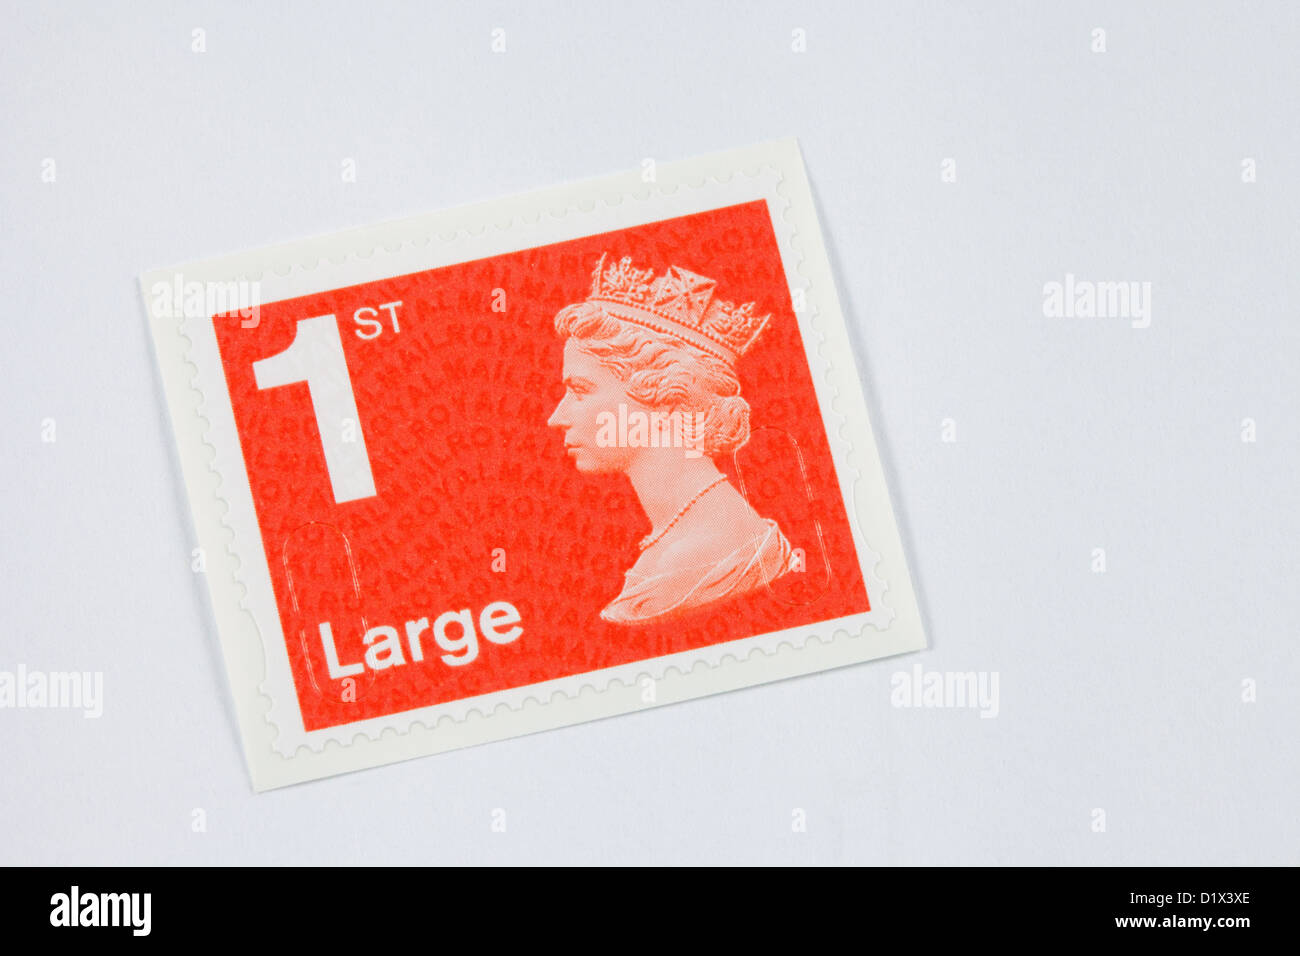 1st class stamp for a large letter, new colour 2013, England, UK - Stock Image